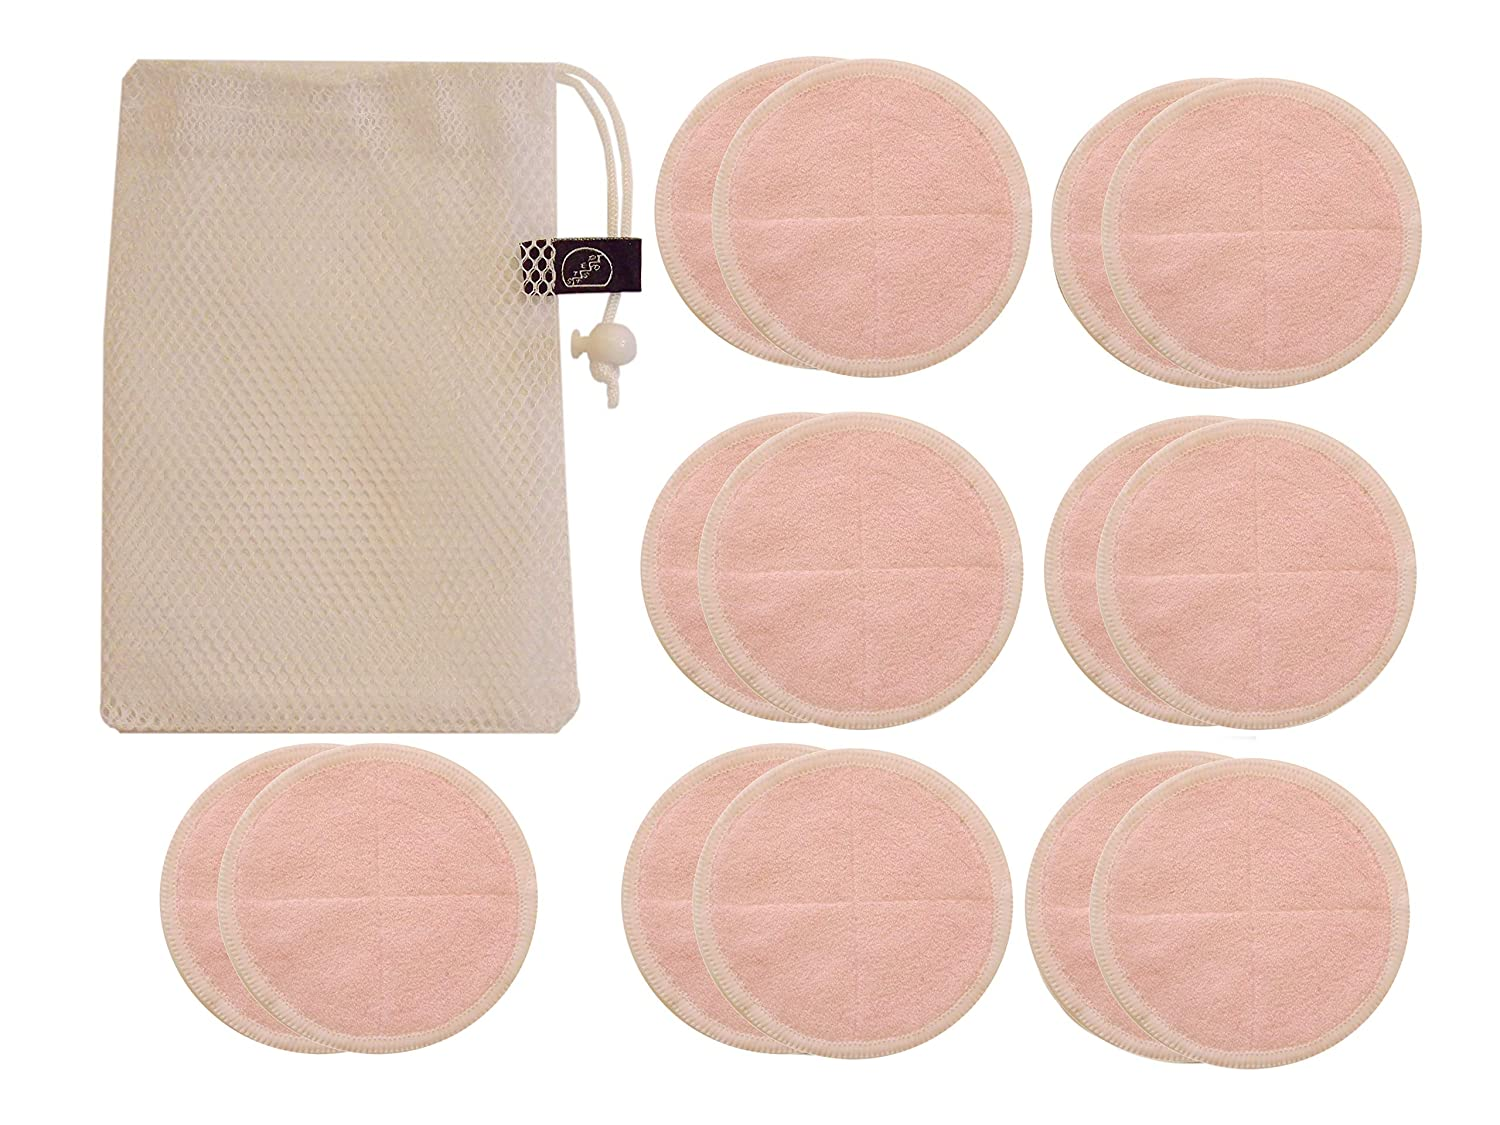 STEPNSD Premium Stitched Organic Bamboo Makeup Remover Pads - 14 Pack with Laundry Bag - Chemical Free & Reusable, Soft Facial and Skin Care Wash Cloth Towel (Pink)